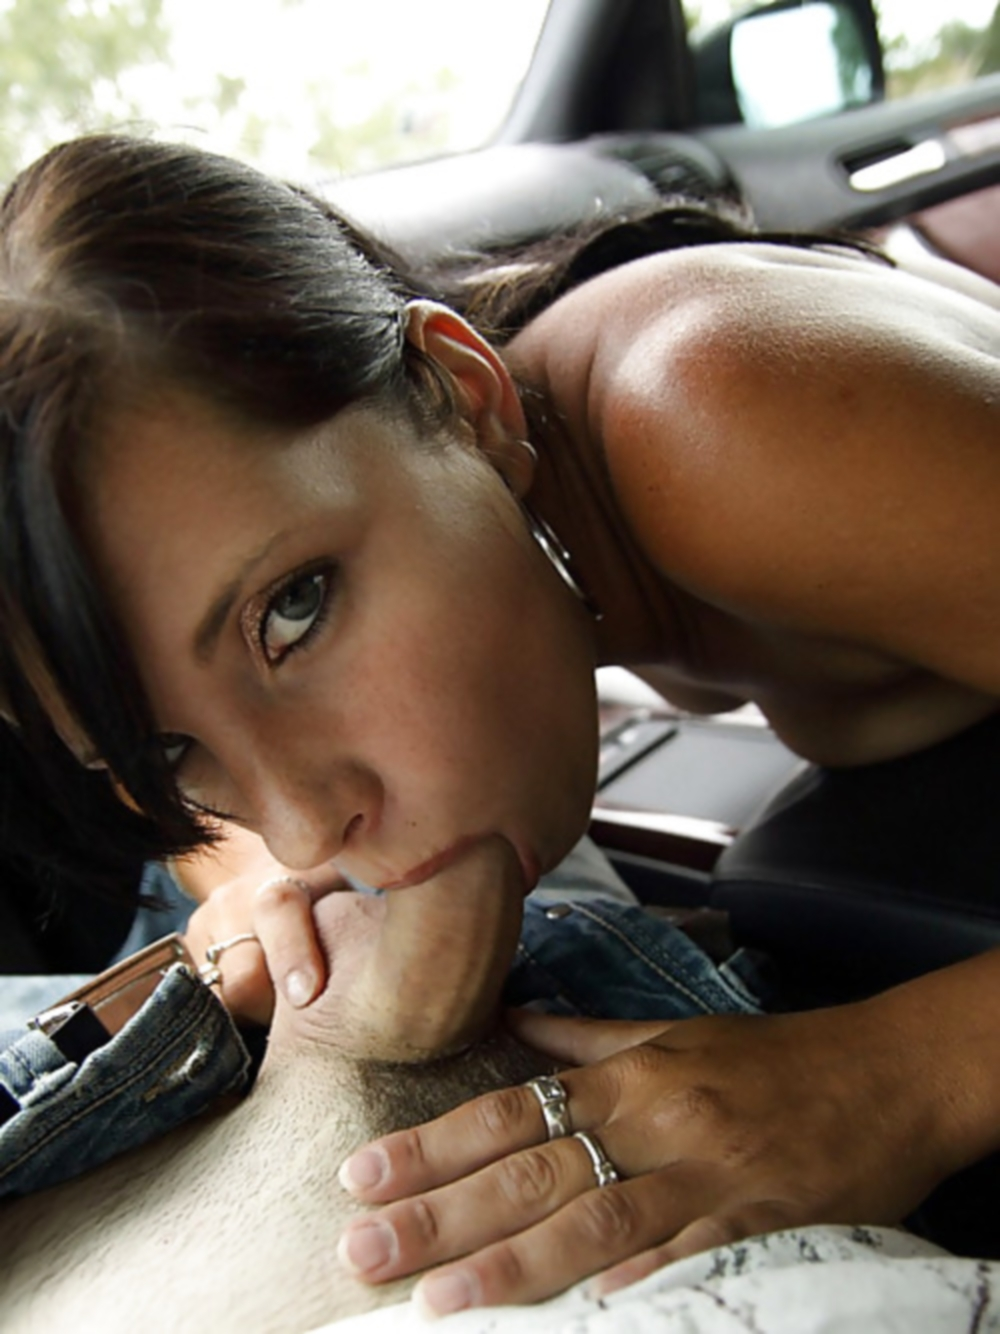 Sucking Big Dick And Car